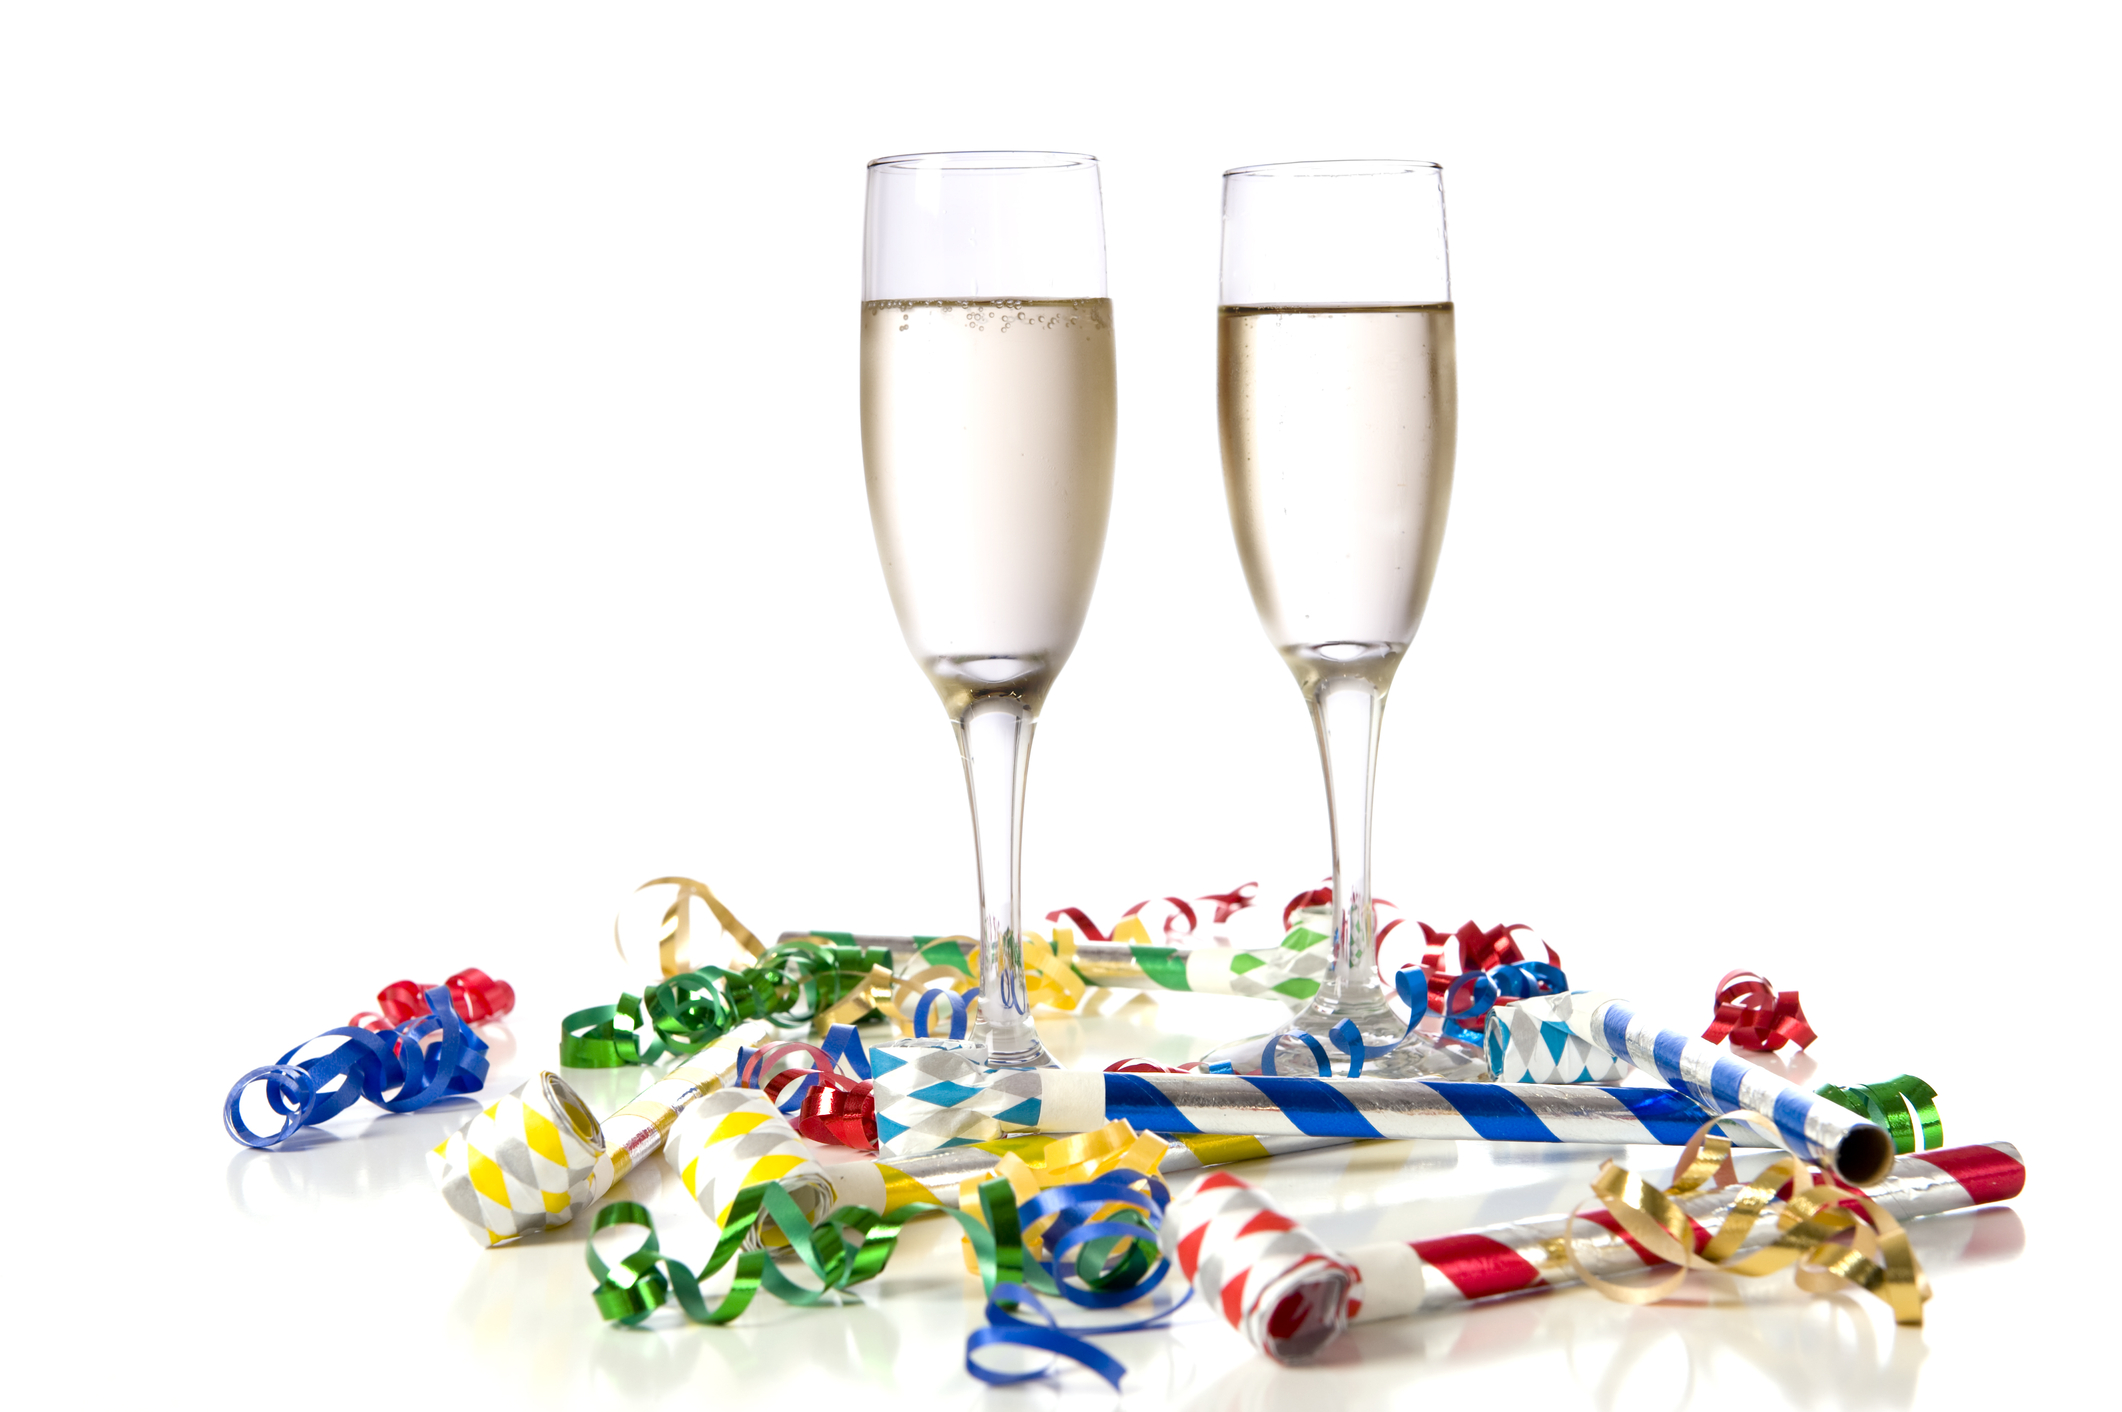 Cheers to you! Cheers to a great 2015 and bring on 2016!Image c/o dreamstime.com